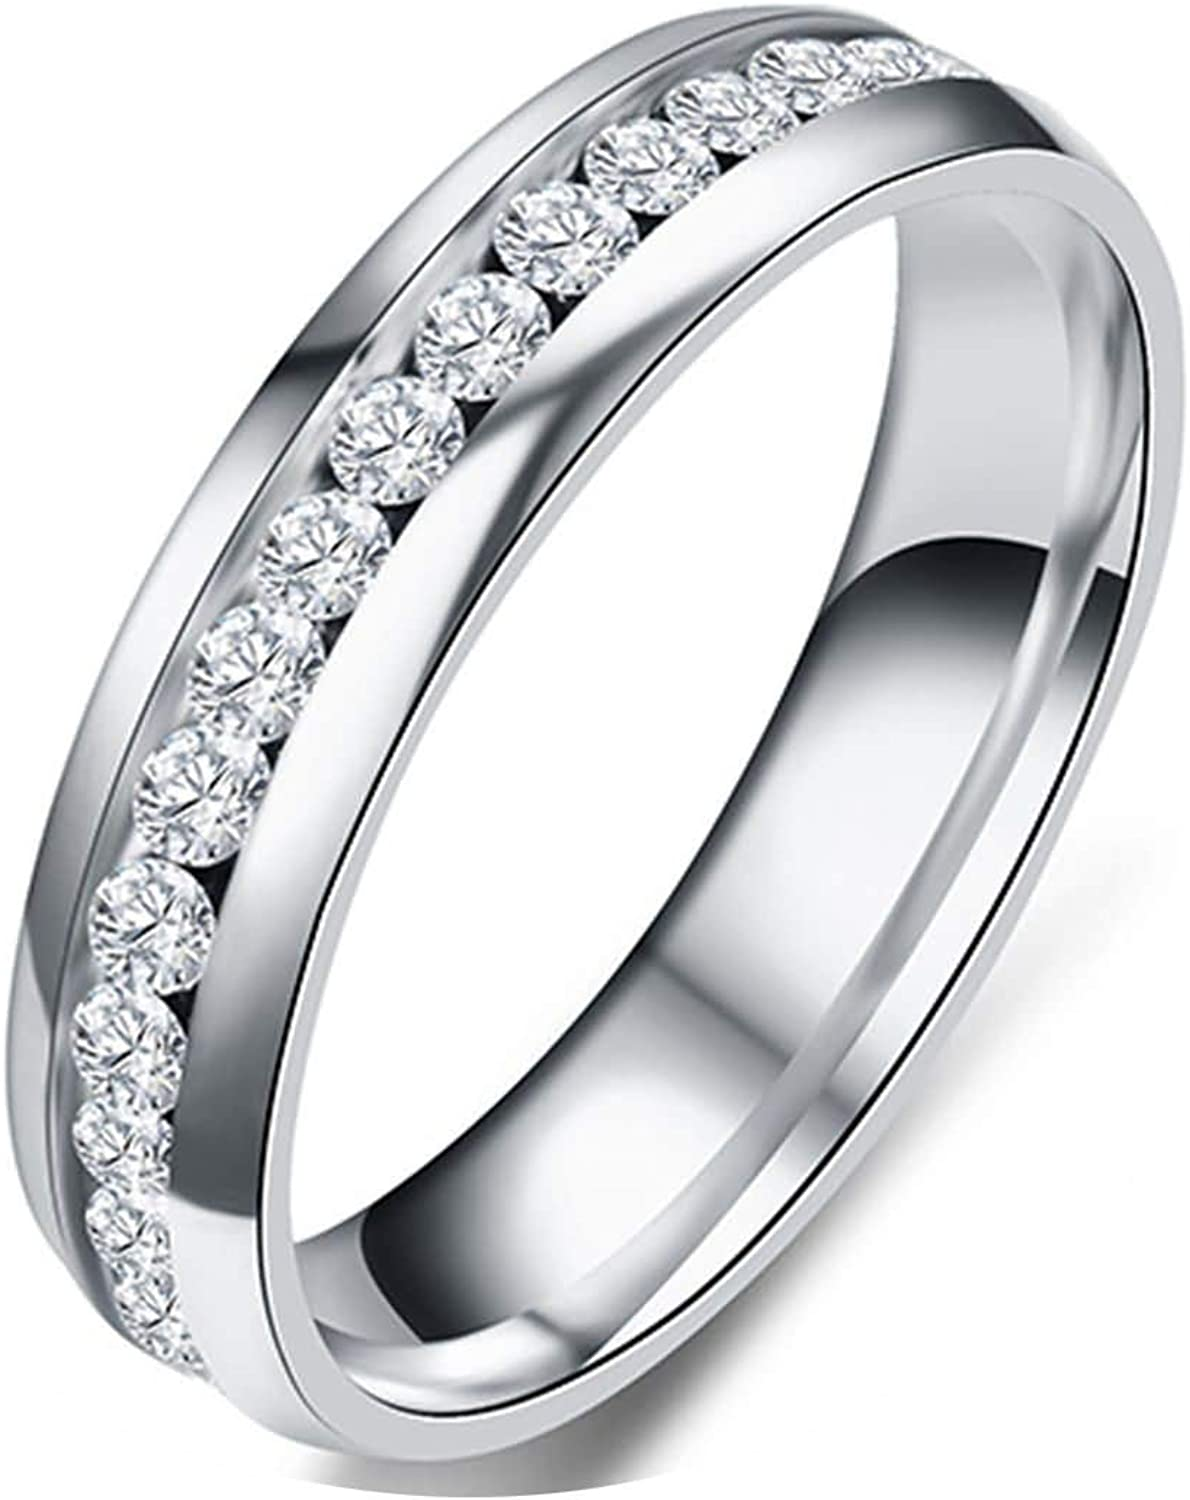 ANAZOZ Stainless Steel Rings Marriage Cubic Zirconia Gold Plated Engagement Ring Vintage Style